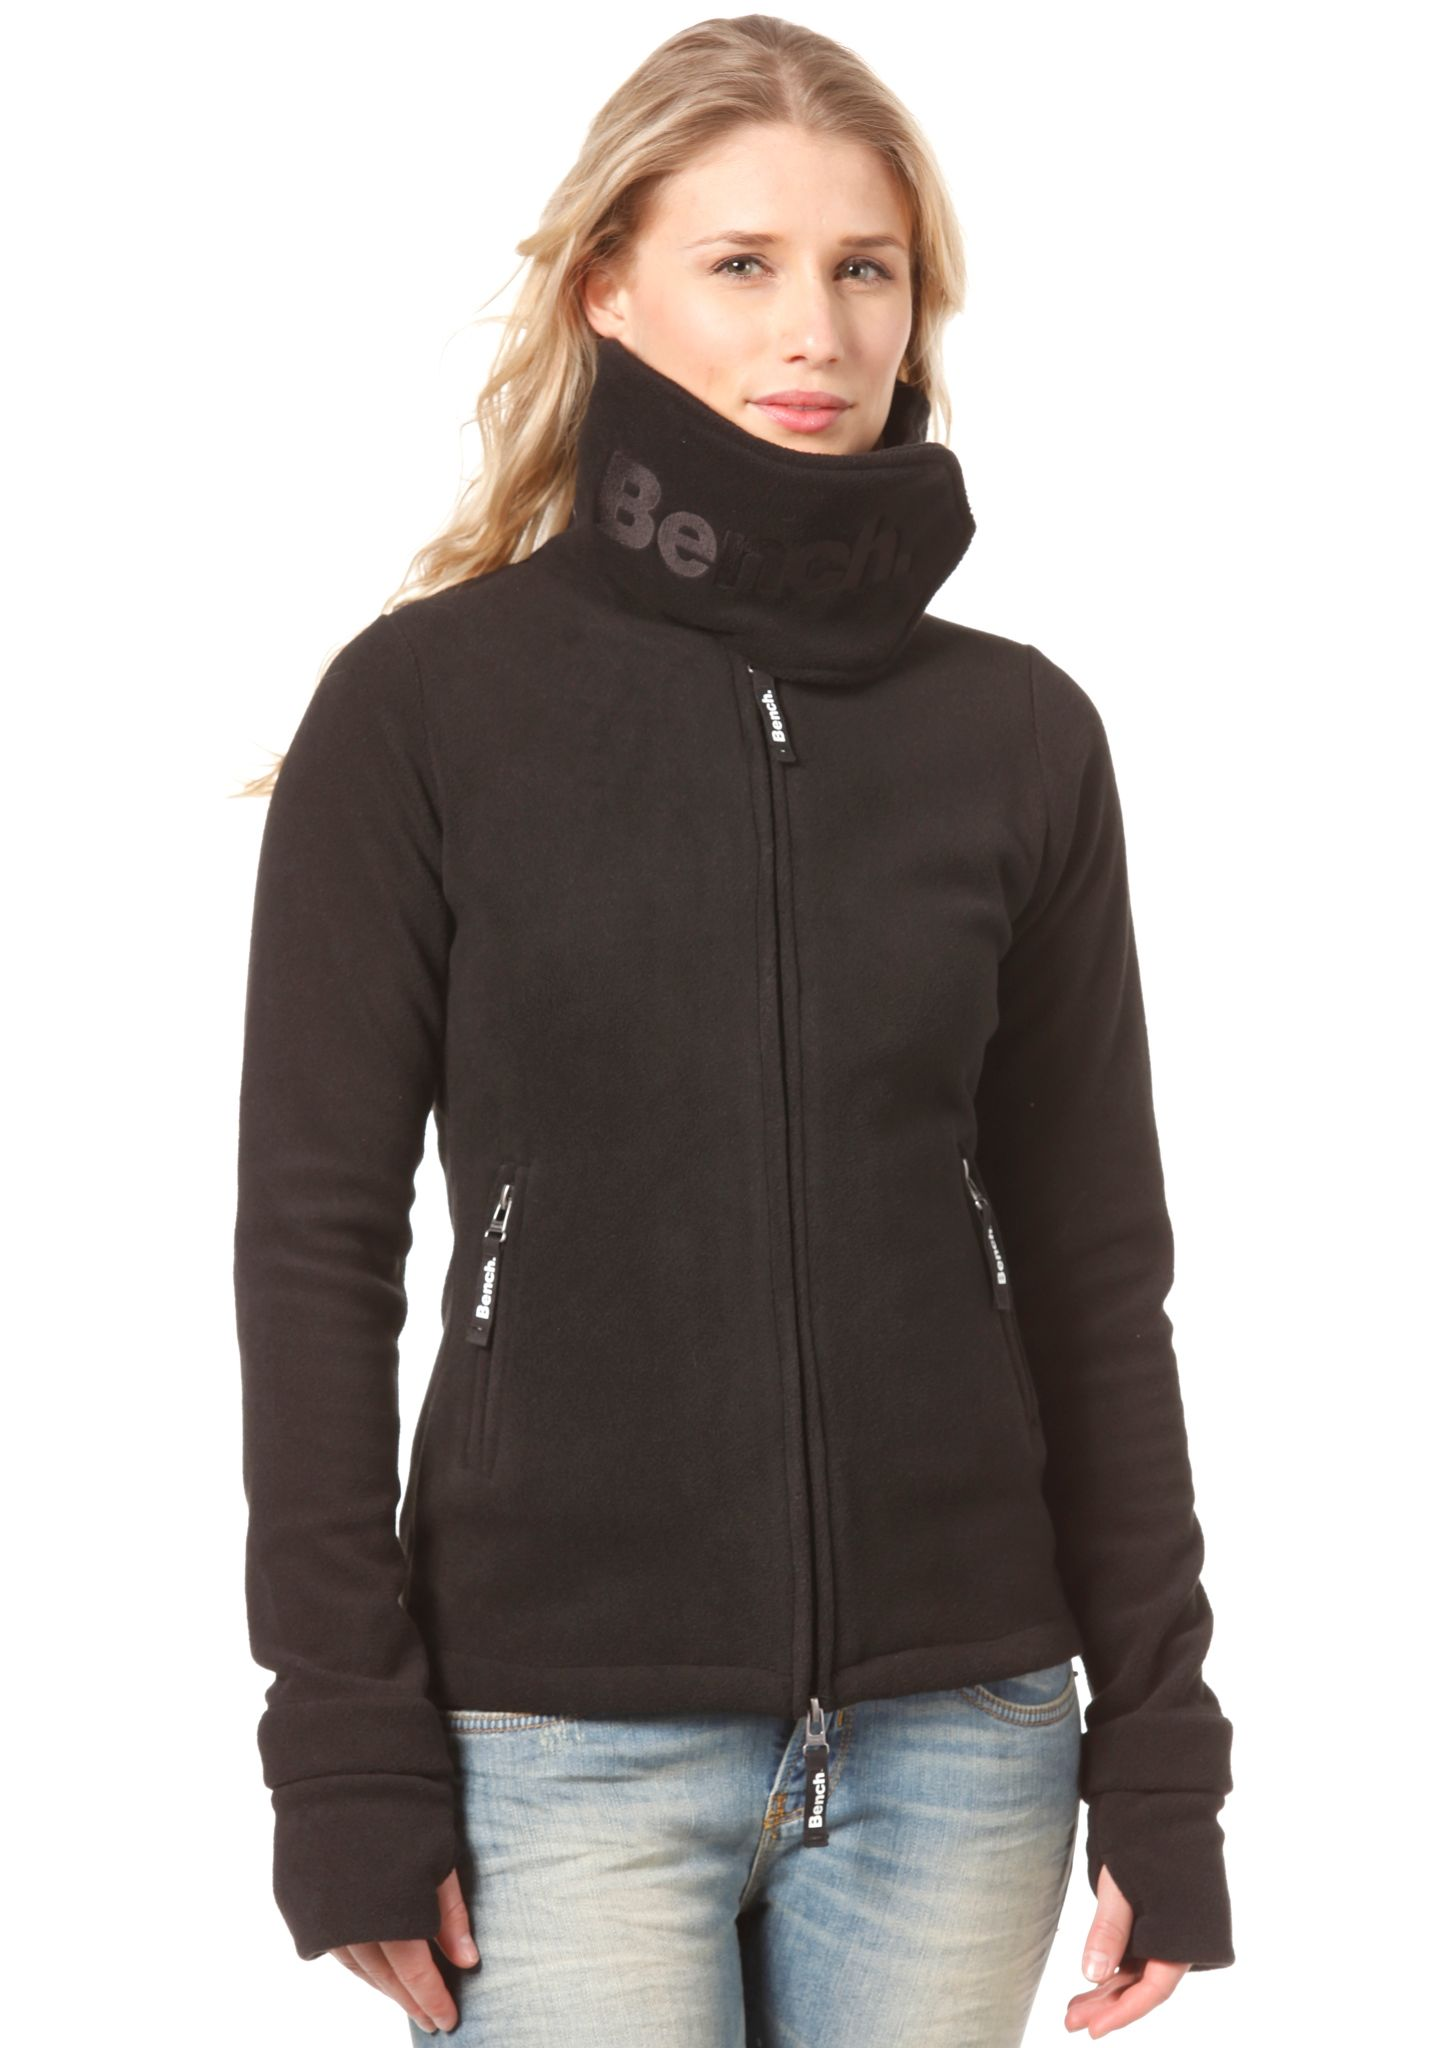 BENCH Funnel Neck Fleece Jacket - Sweat Jacket for Women - Black - Planet  Sports